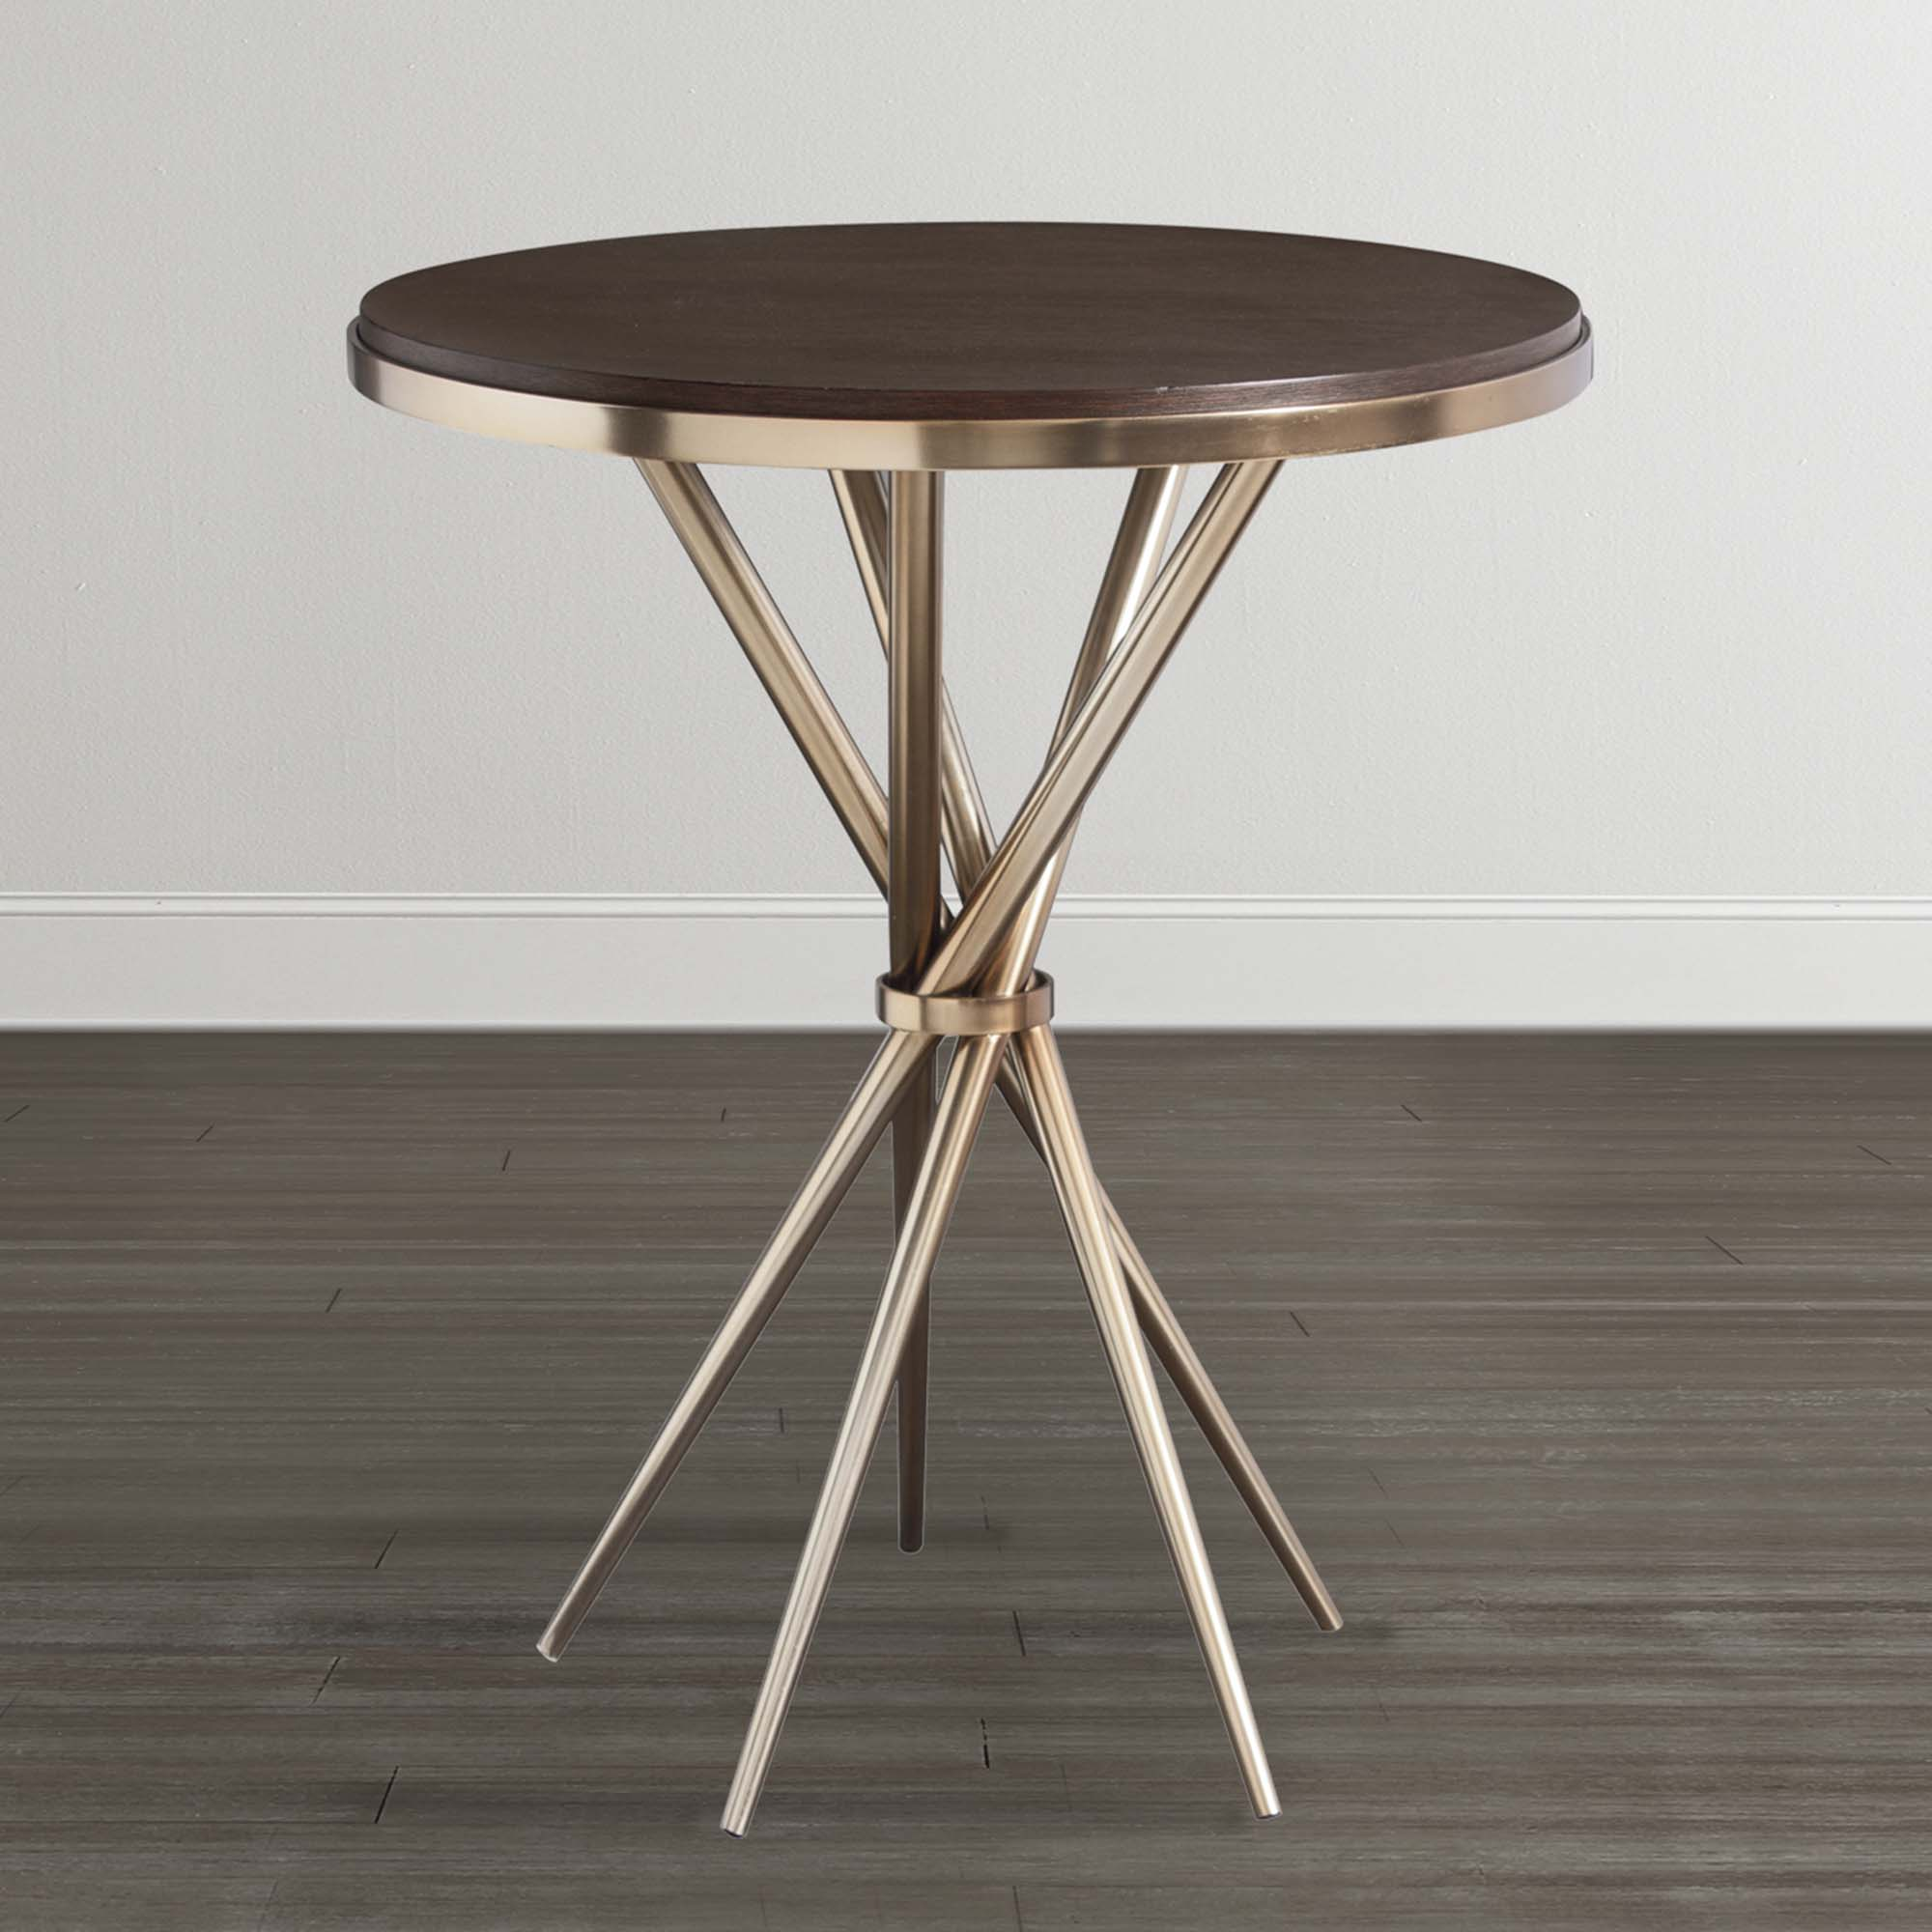 accent tables bassett furniture high round table hampton bay pembrey turned leg coffee aquarian drum heads yellow placemats outdoor patio seating home goods kitchen cabinets grill